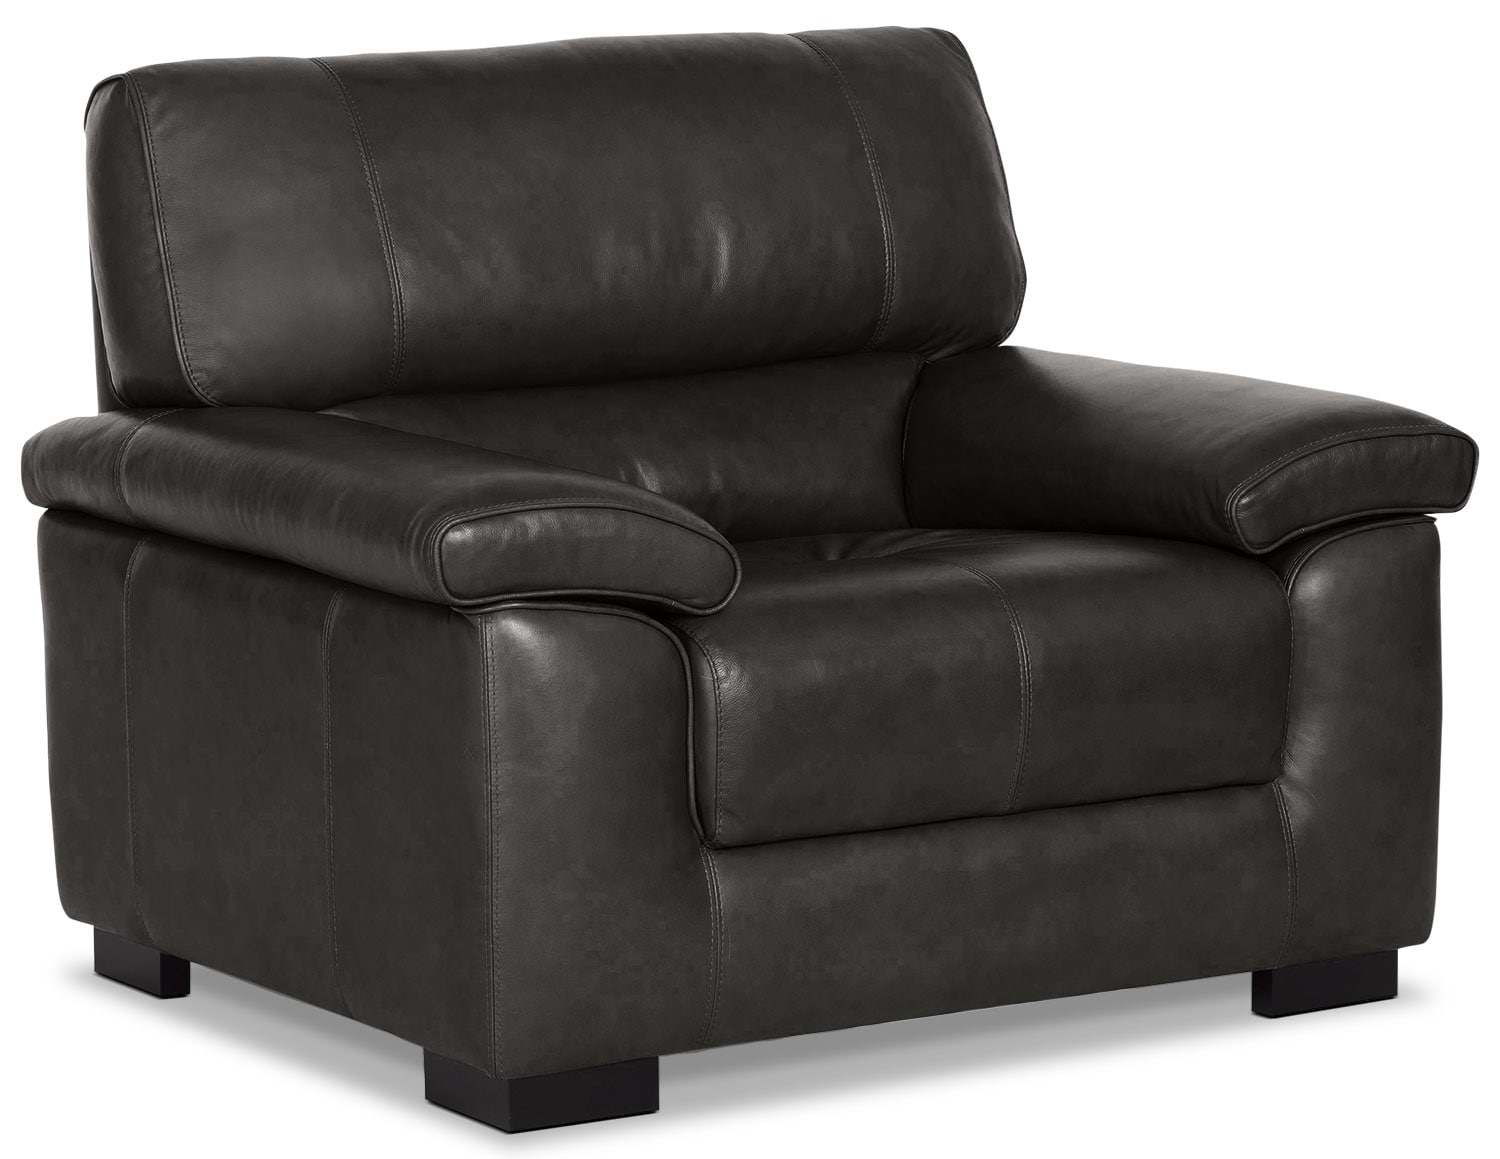 Chateau Dax Furniture Reviews: Chateau D'Ax 100% Genuine Leather Chair - Charcoal